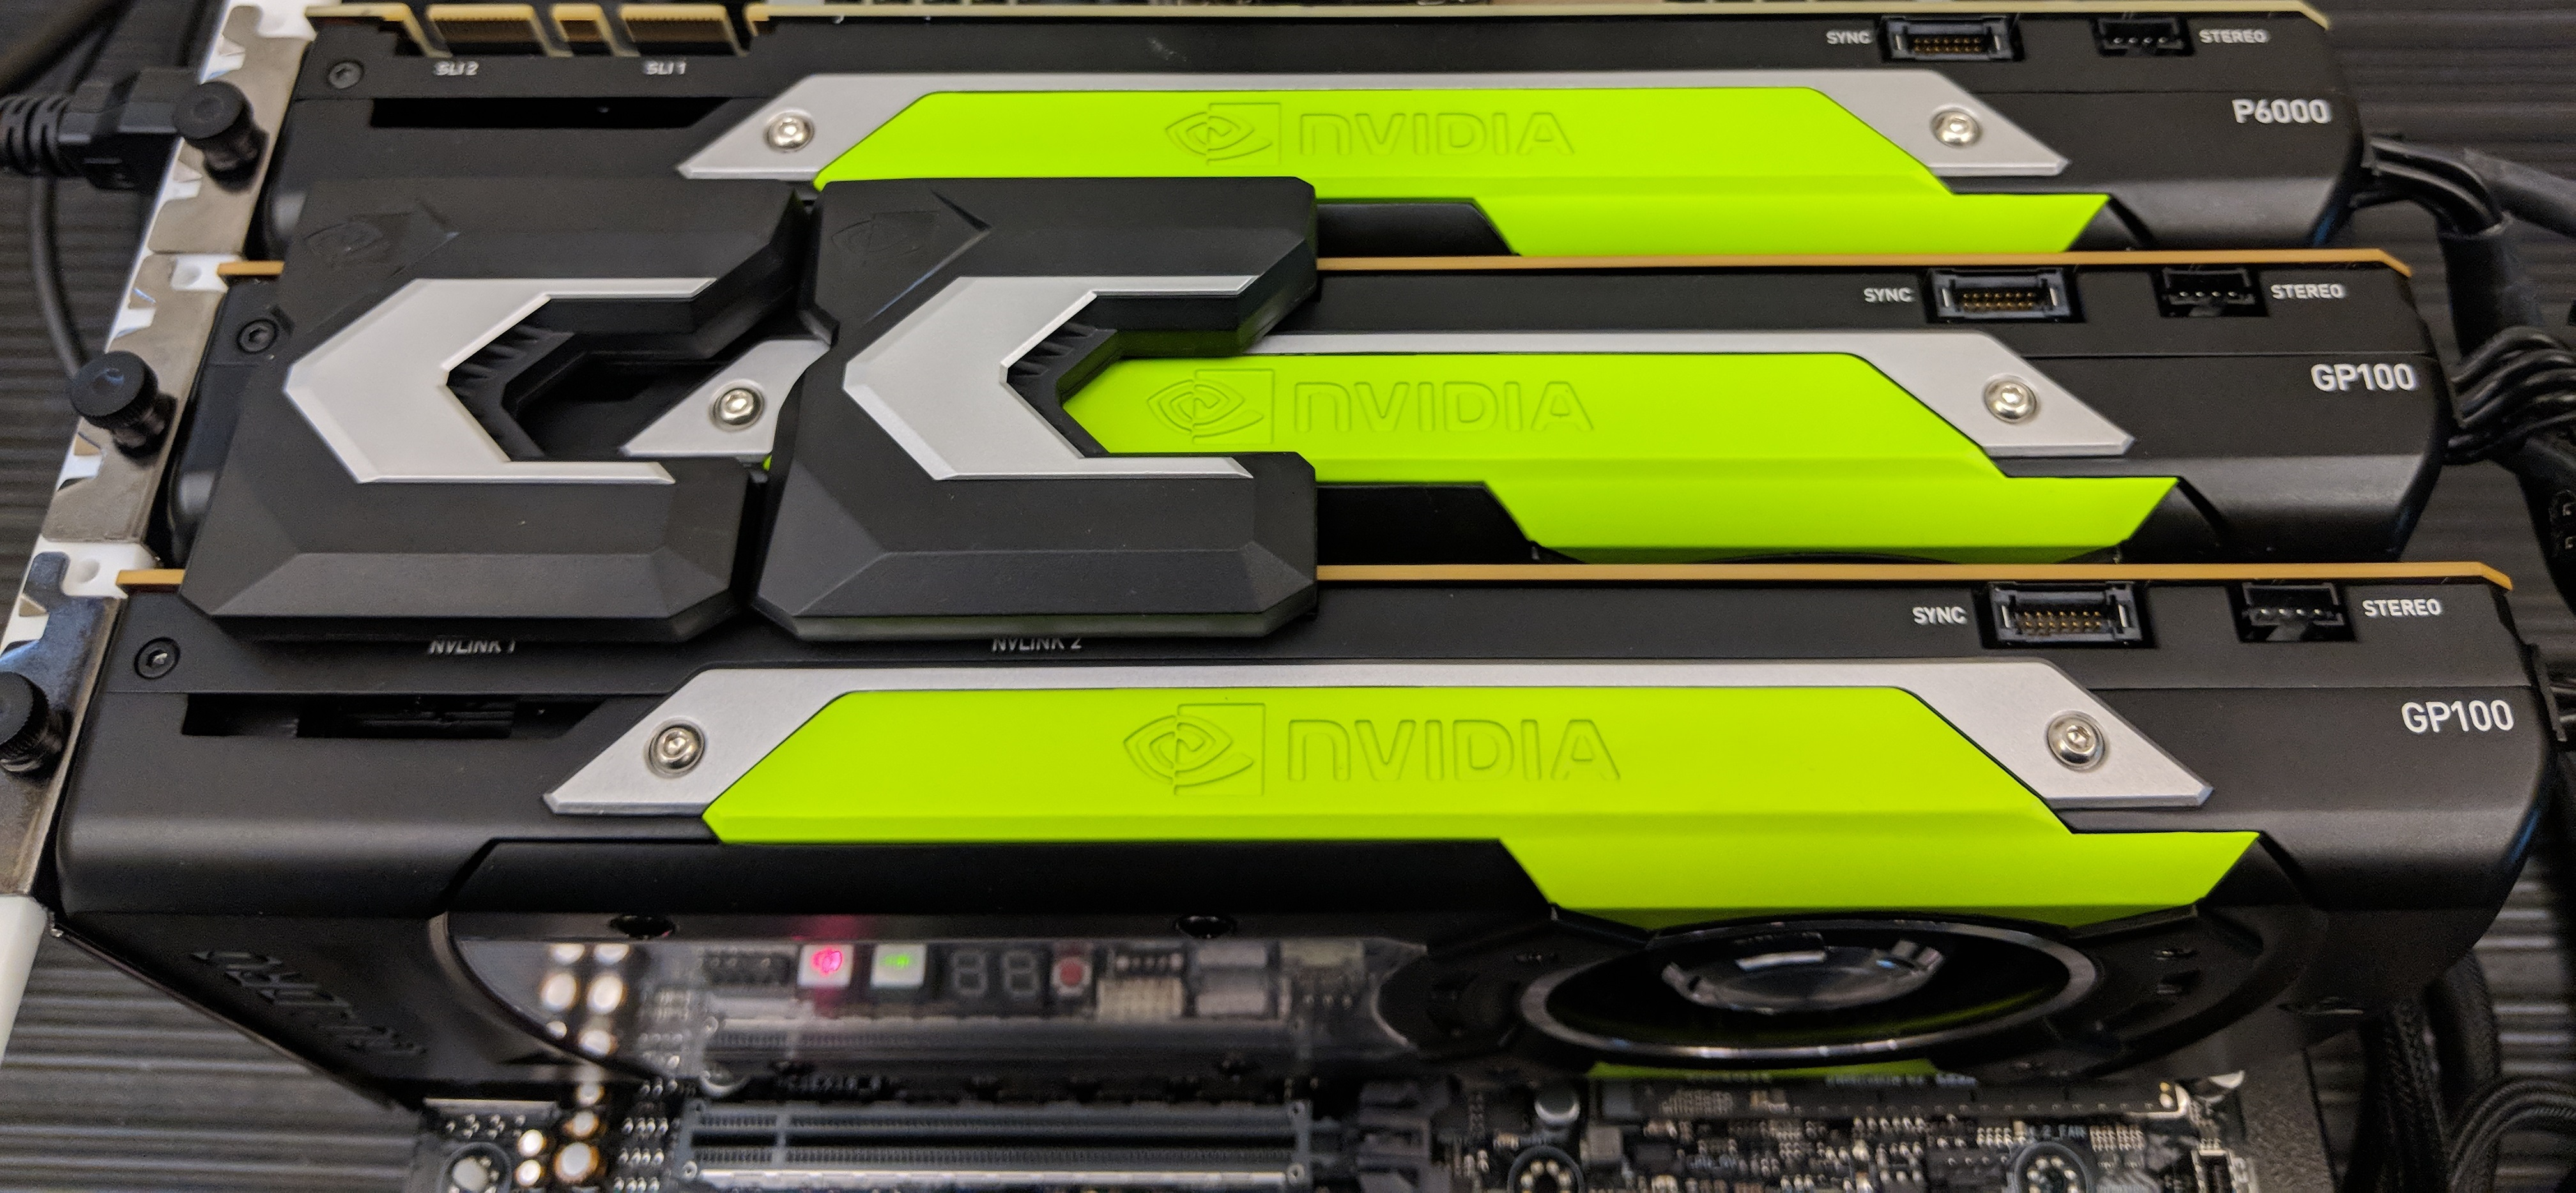 Dual NVIDIA Quadro GP100 Cards with Dual Quadro NVLink Bridges Installed